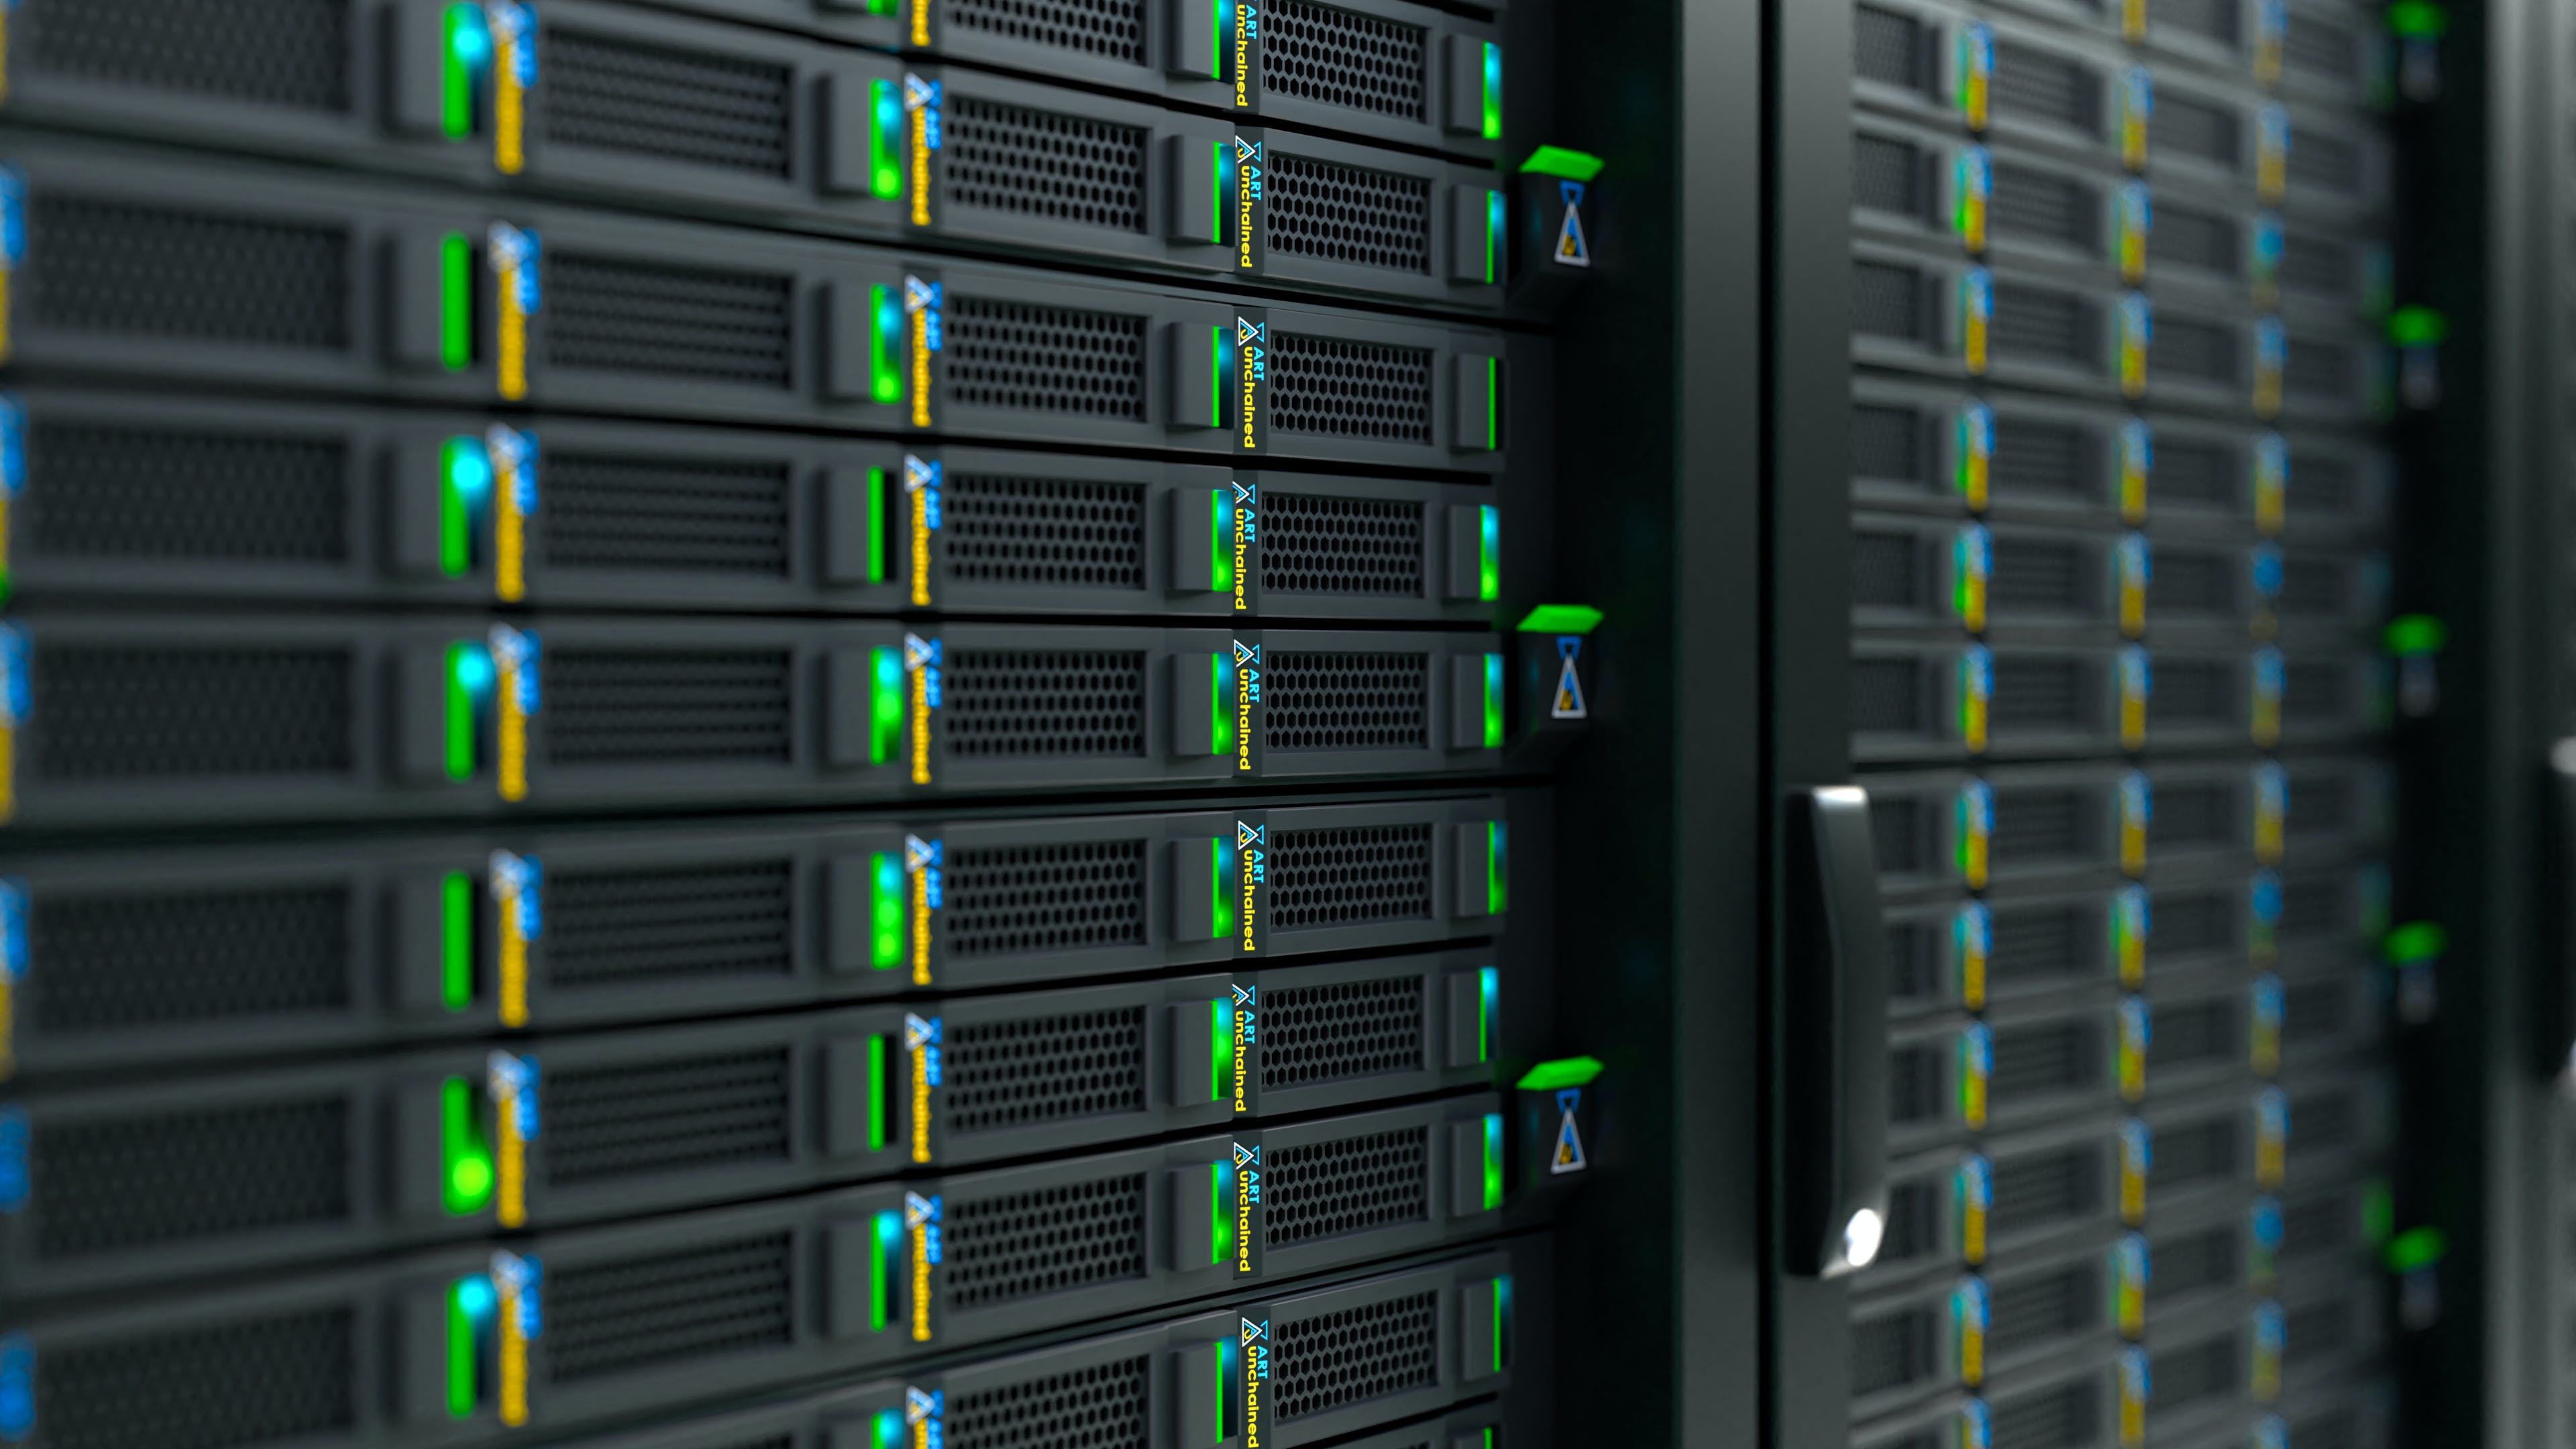 Free stock photo of server